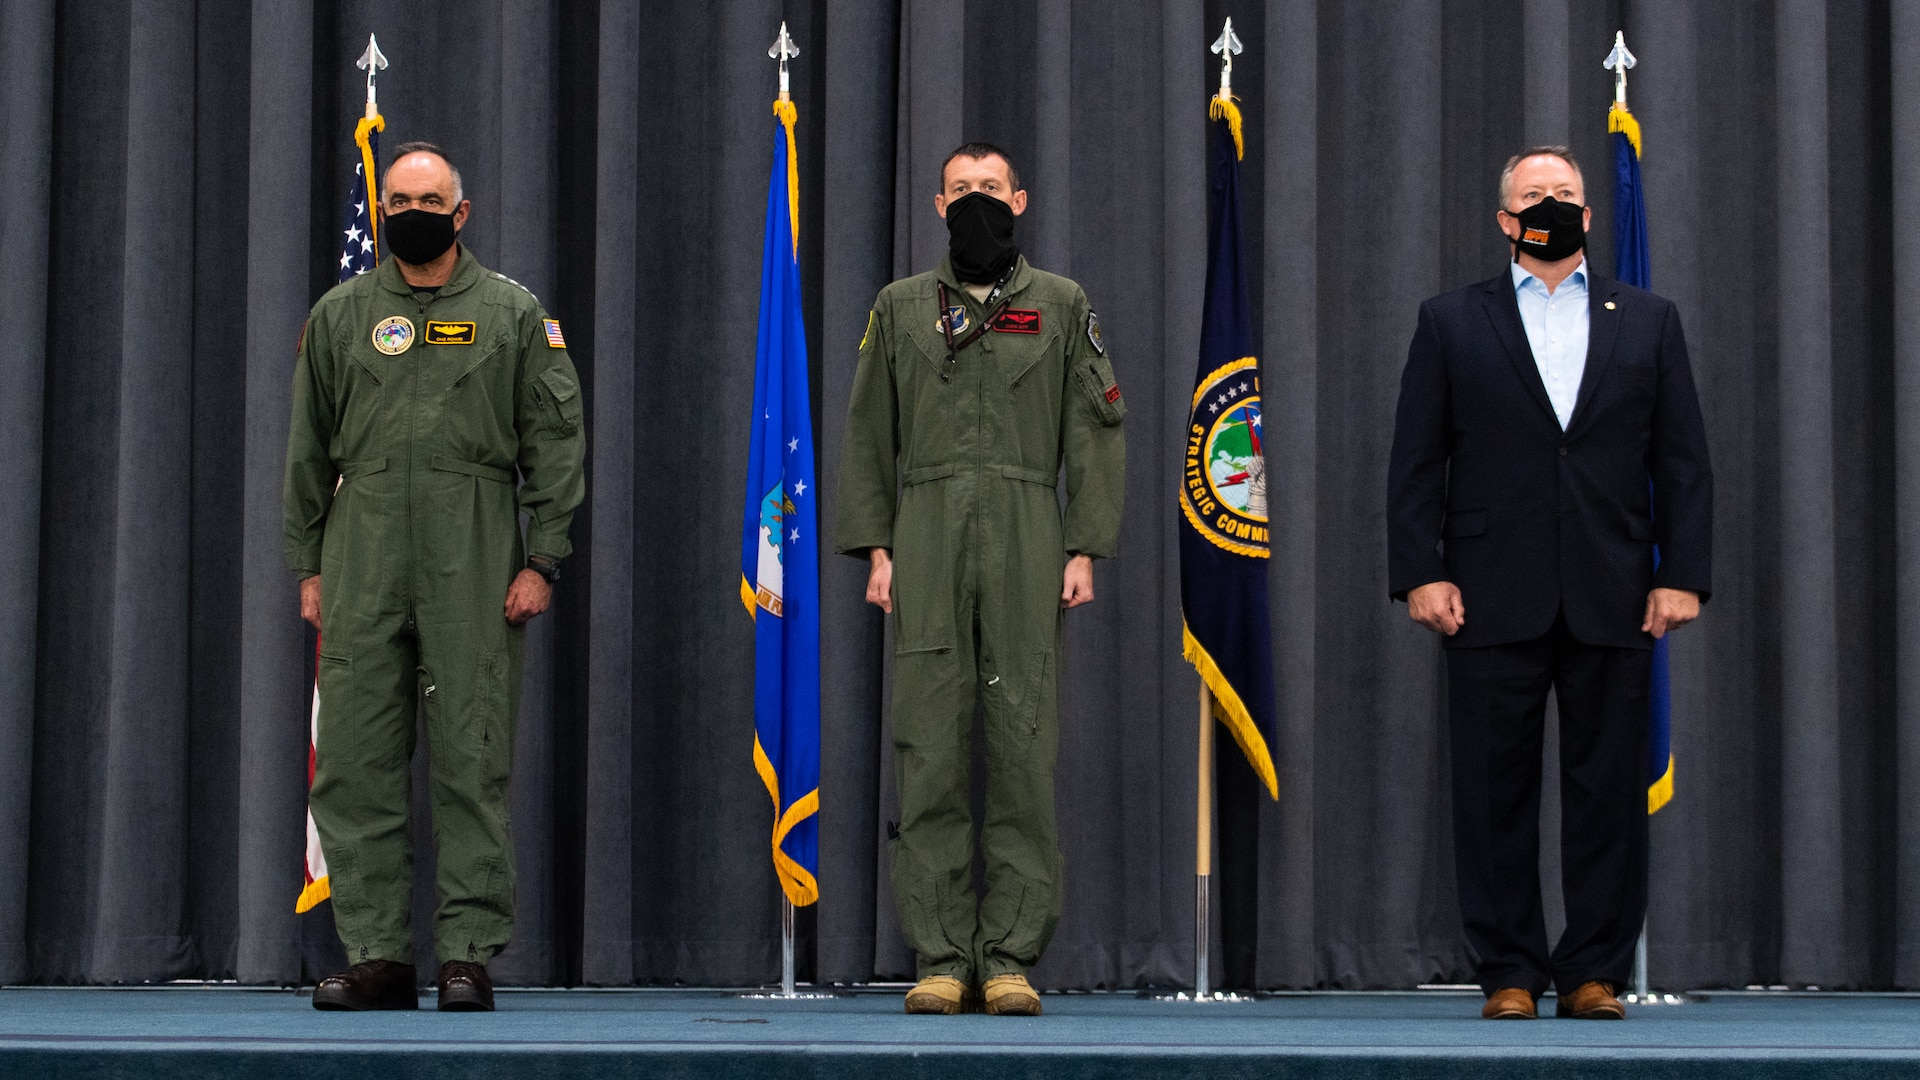 (Left to right) Adm. Charles Richard, U.S. Strategic Command commander, Lt. Col. Christopher Duff, 96th Bomb Squadron commander, and Mr. Tim Burke, Strategic Command Consultation Committee chairman, stand at the position of attention during the presentation of the Omaha Trophy to the 96th BS at Barksdale Air Force Base, Louisiana, March 30, 2021.The Omaha Trophy is awarded each year to various units in recognition of outstanding support to USSTRATCOM's strategic deterrence mission (U.S. Air Force photo by Airman 1st Class Jacob B. Wrightsman)